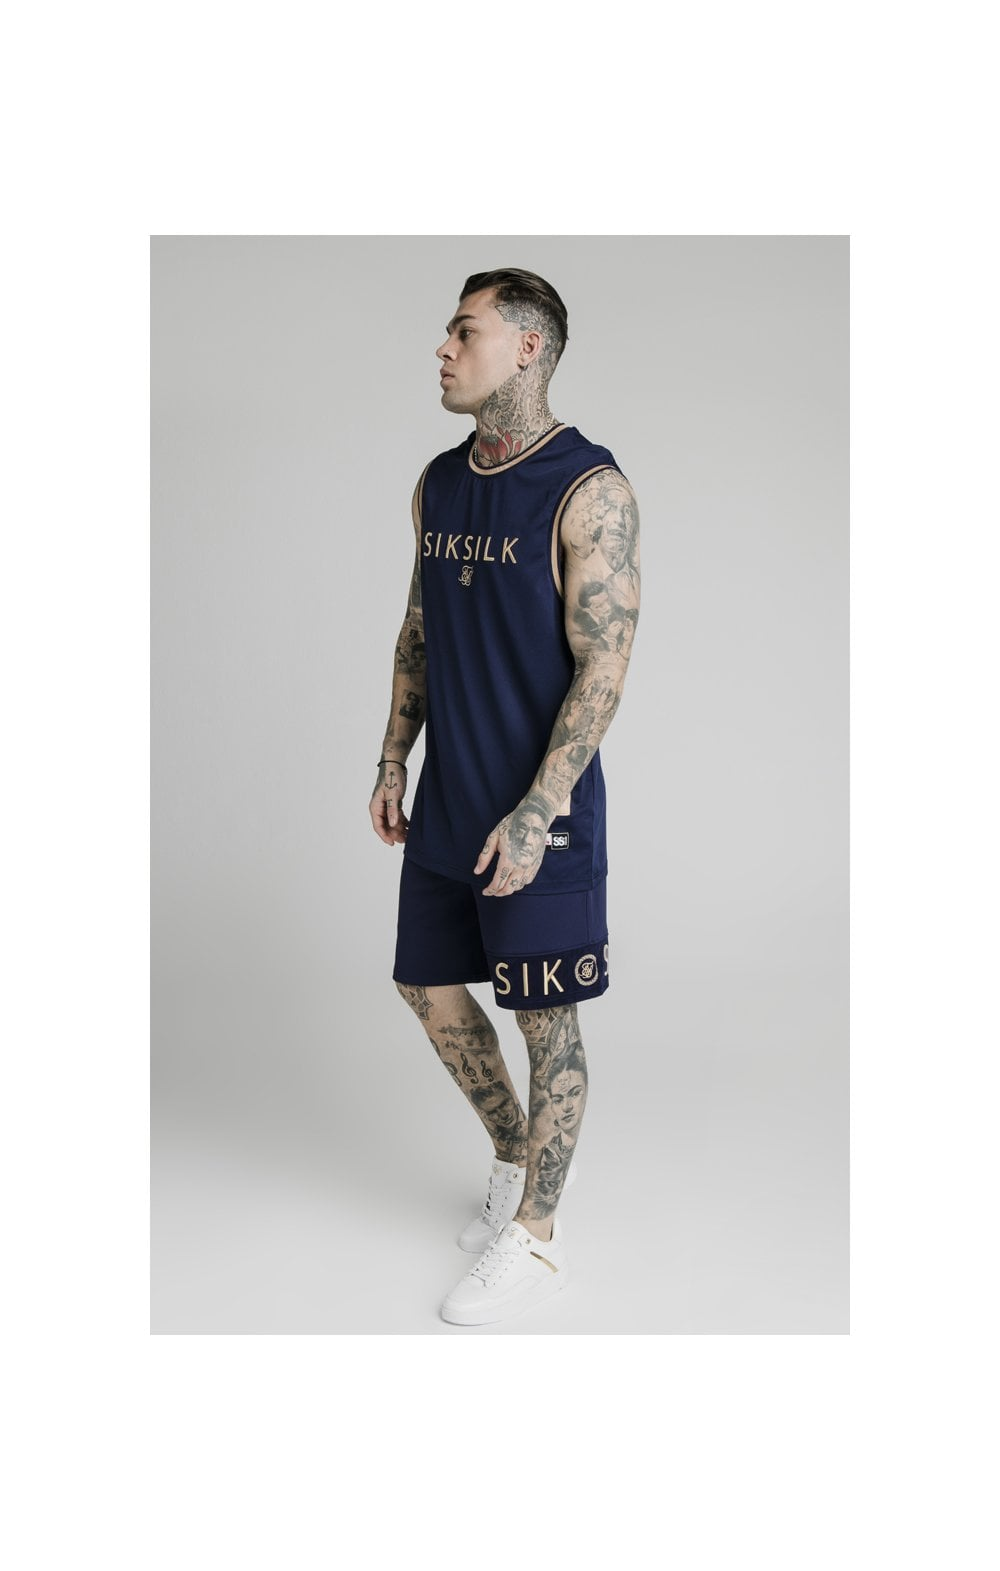 SikSilk Eyelet Panel Relaxed Fit Shorts - Navy Eclipse (6)